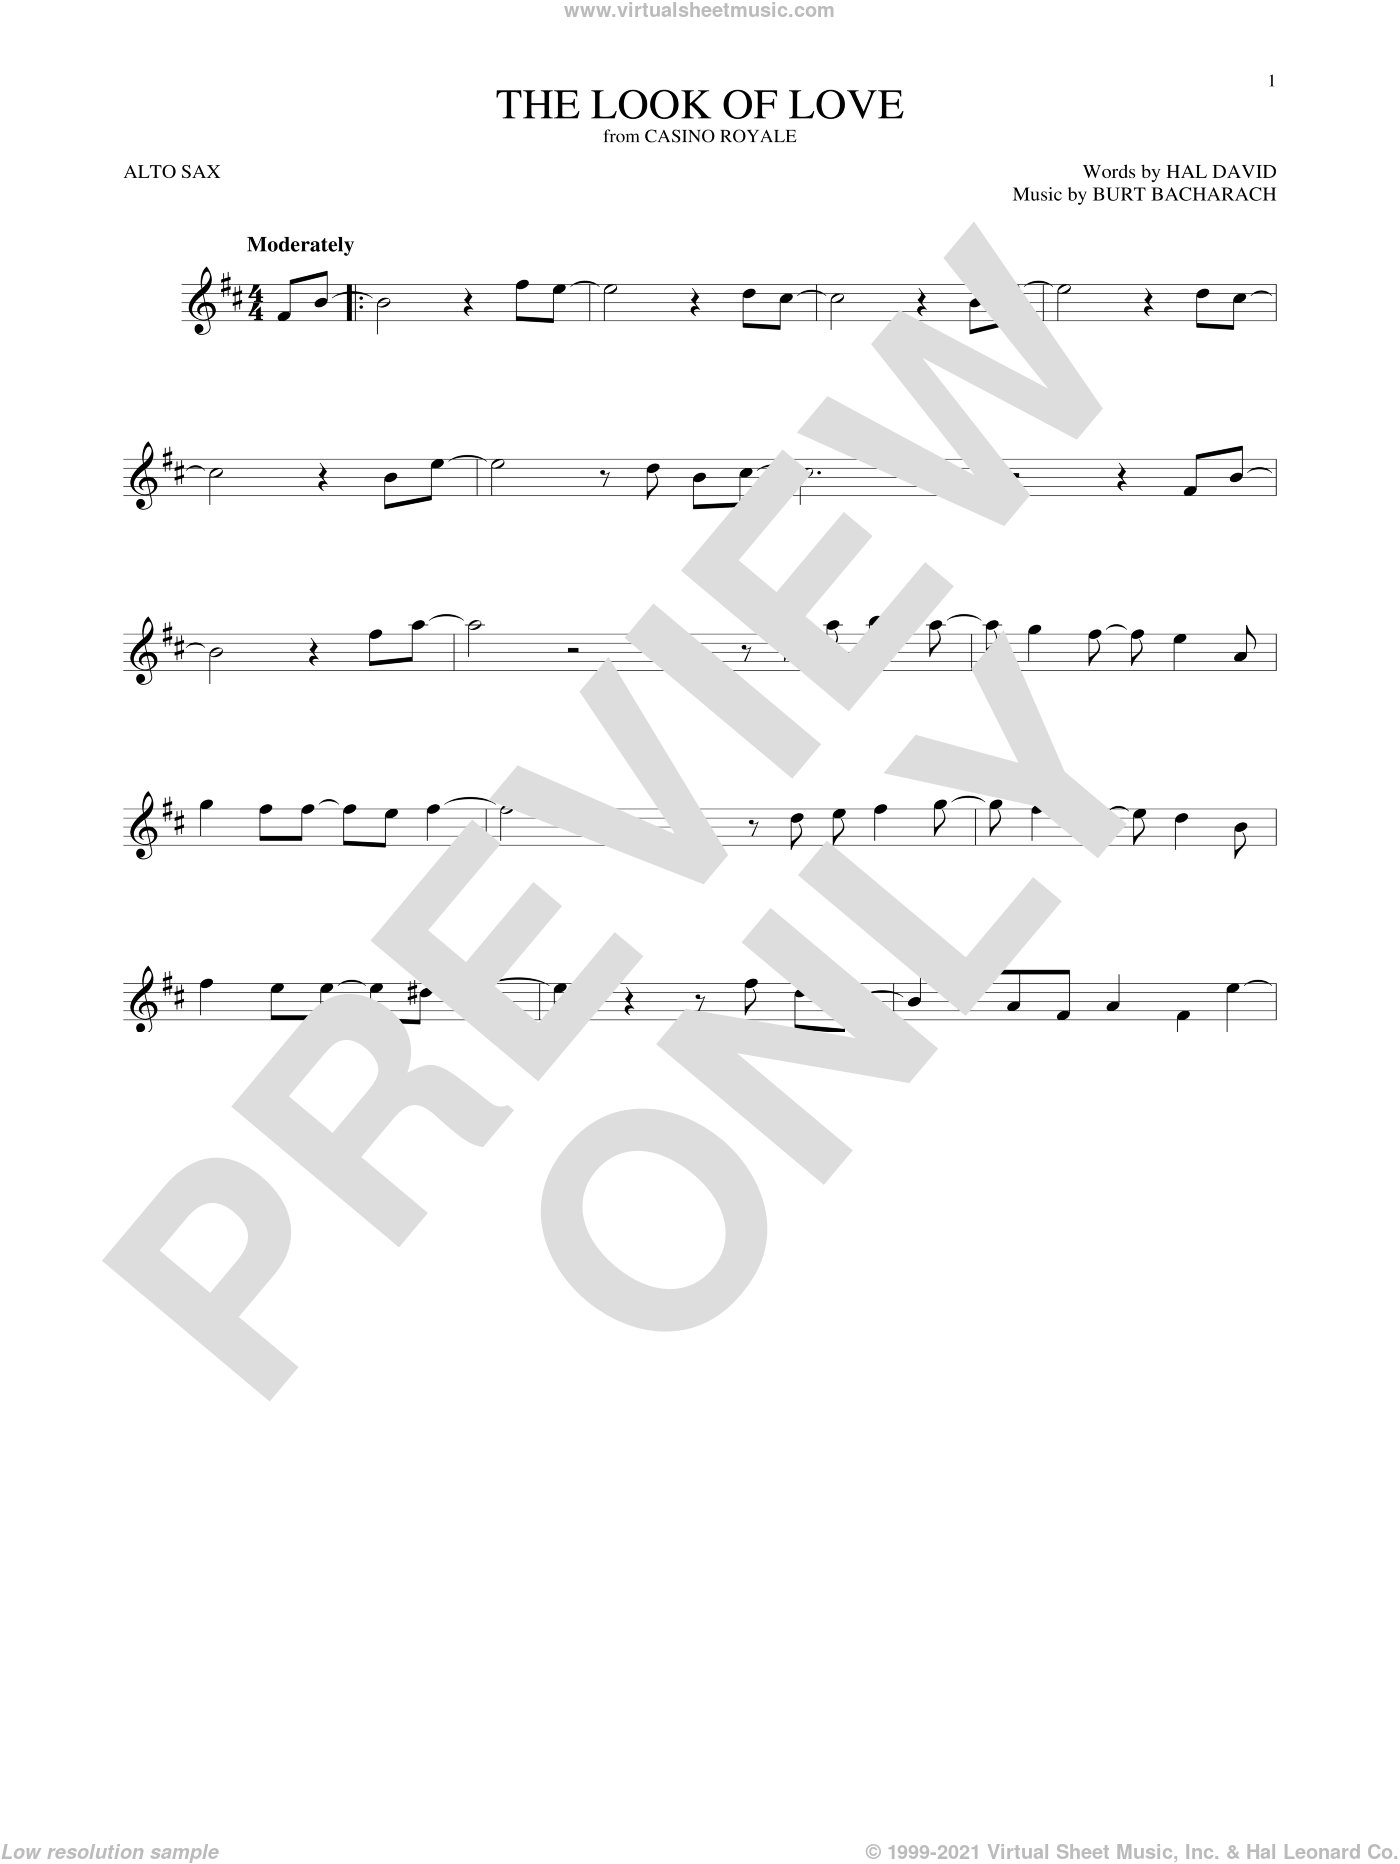 The Look Of Love sheet music for alto saxophone solo by Sergio Mendes & Brasil '66, Burt Bacharach and Hal David, intermediate skill level